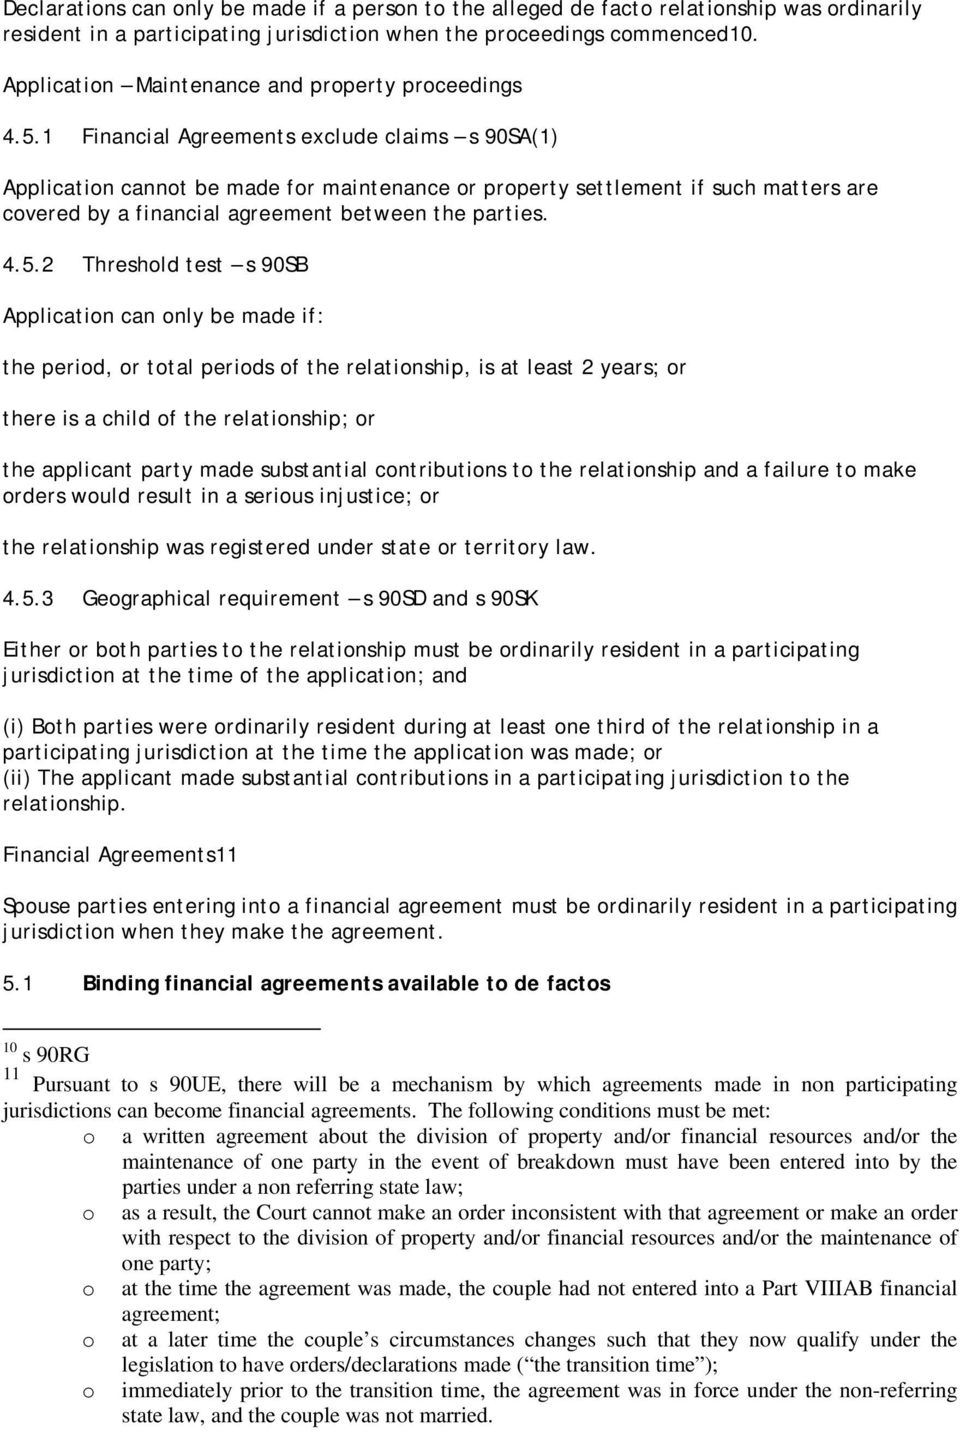 1 Financial Agreements exclude claims s 90SA(1) Application cannot be made for maintenance or property settlement if such matters are covered by a financial agreement between the parties. 4.5.